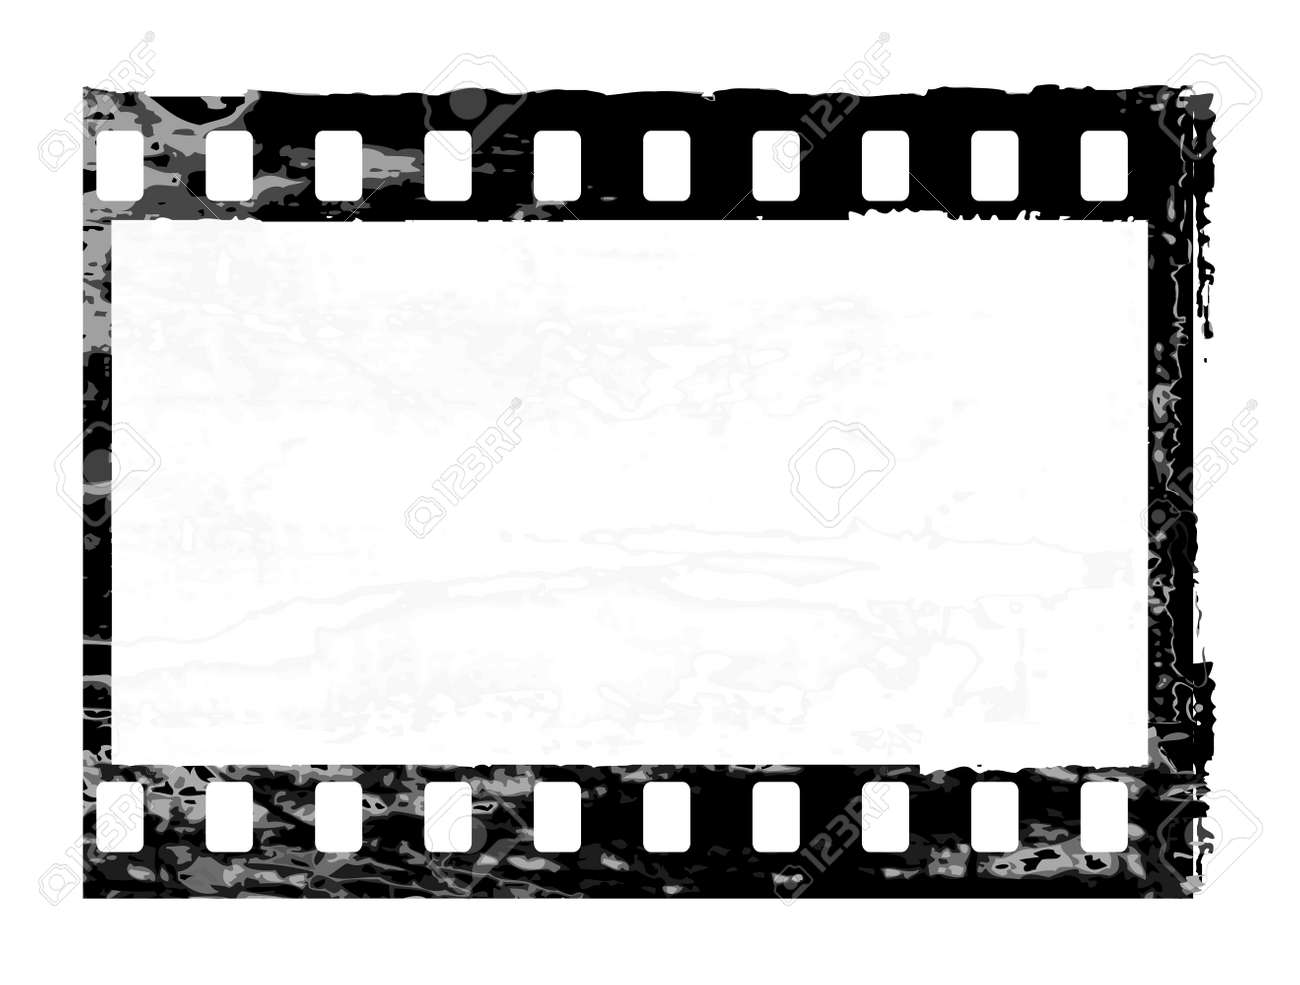 Aged vector illustration of a grunge filmstrip frame. Stock Vector - 5052910